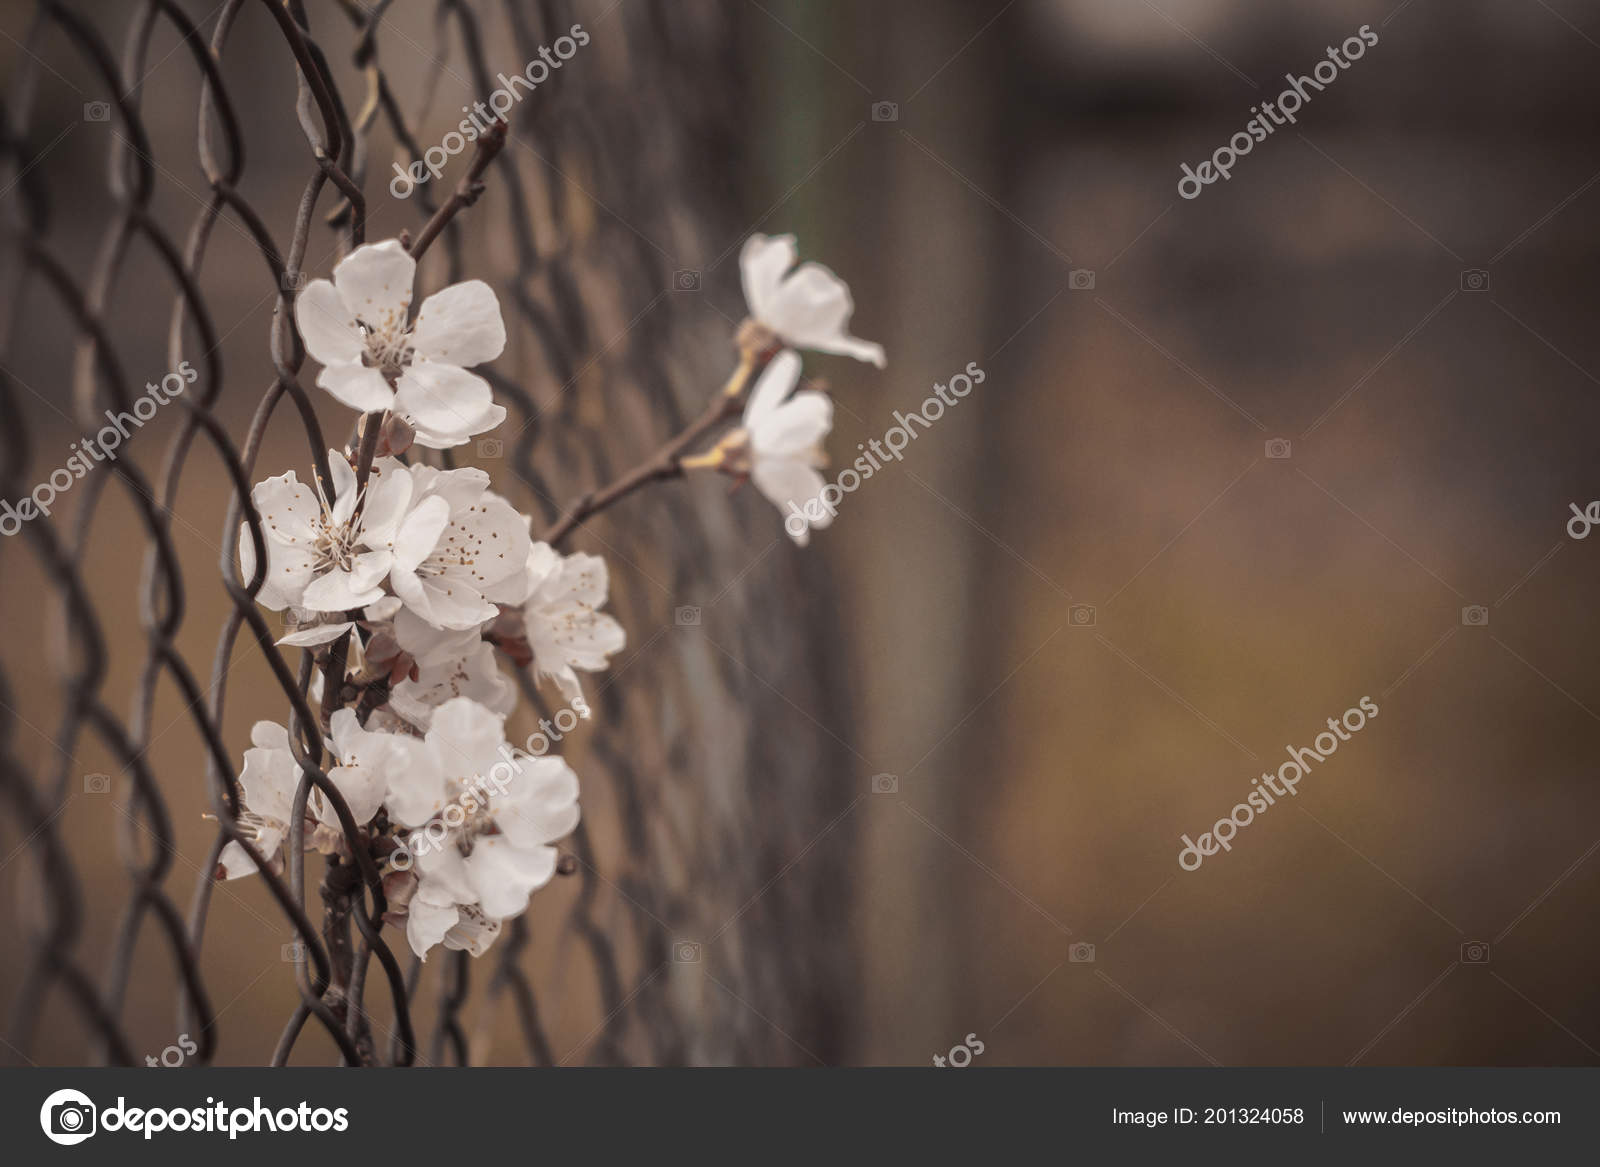 A sad picture of a flower in an iron fence.